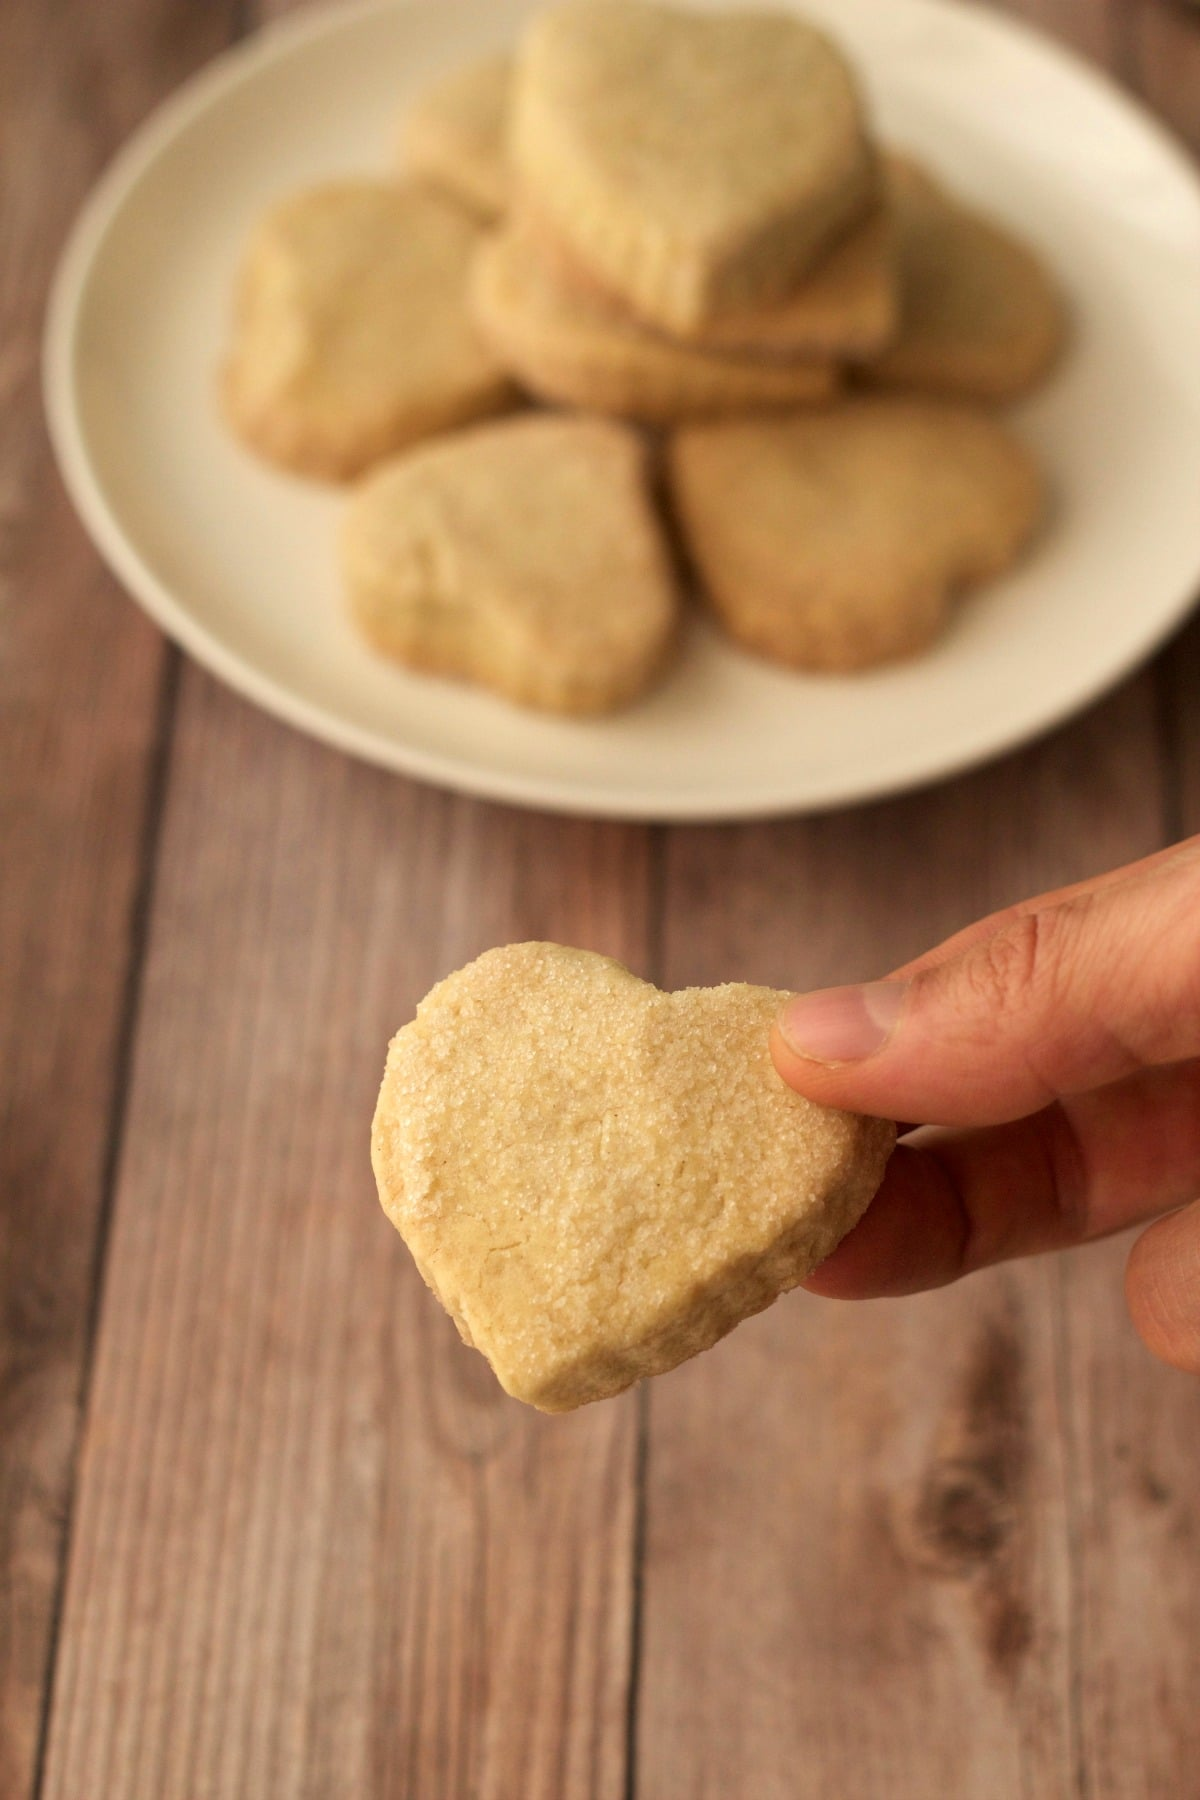 A vegan shortbread cookie with a plate of cookies in the background.